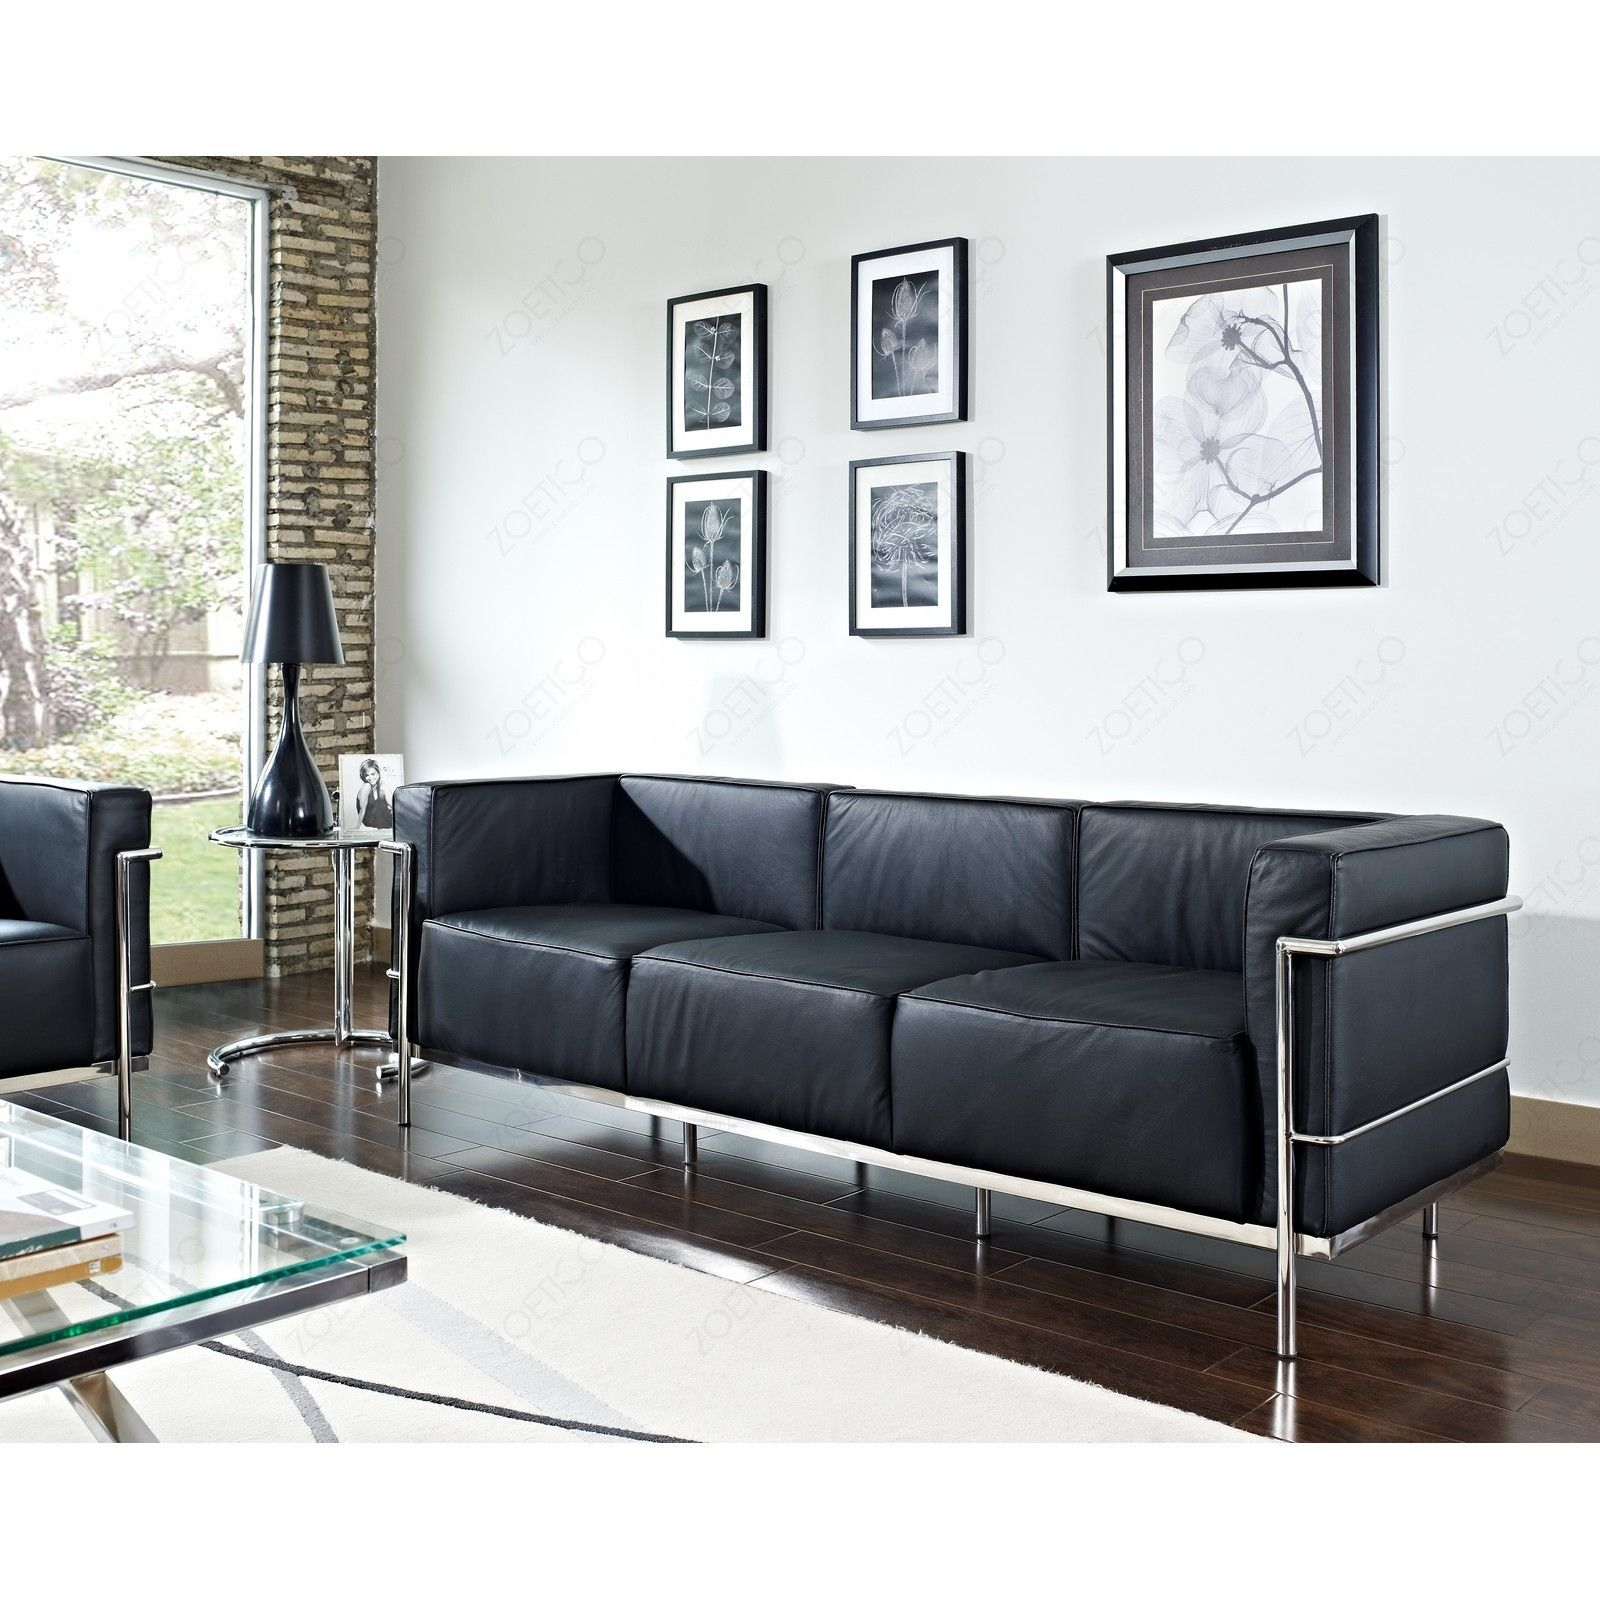 le corbusier leather sofa whole interiors 610 le corbusier sofa set black thesofa. Black Bedroom Furniture Sets. Home Design Ideas